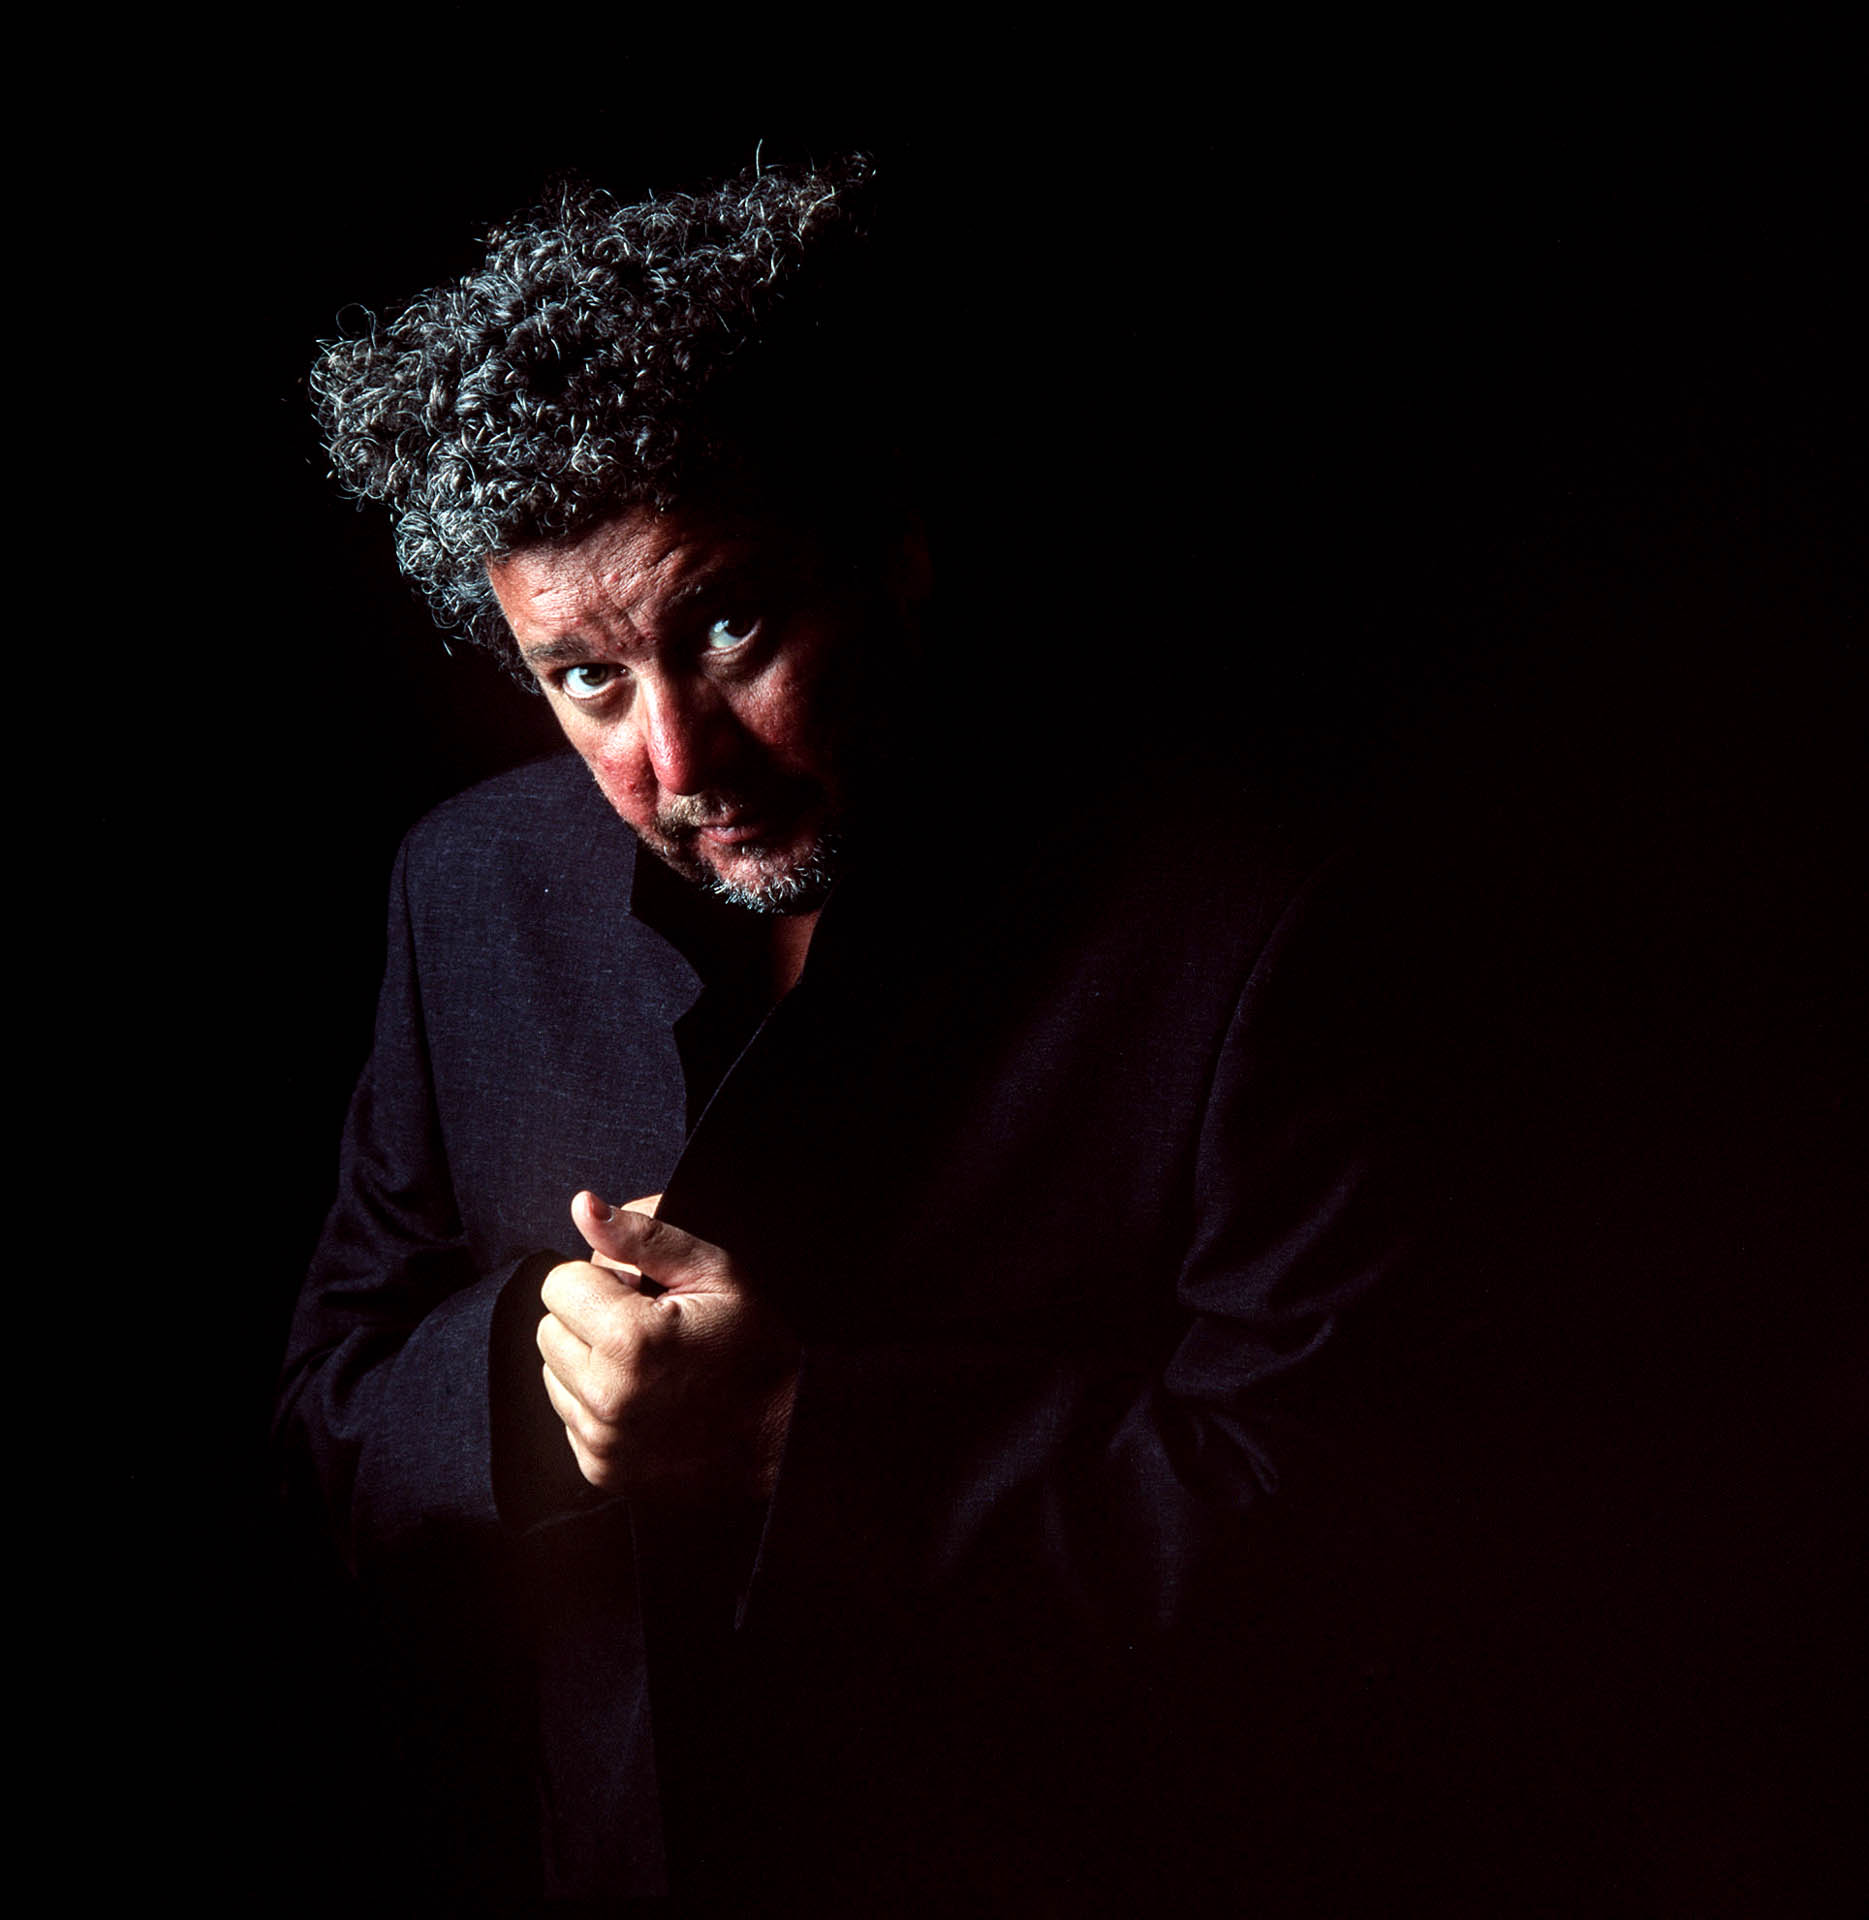 Paris, France - March 7, 2000